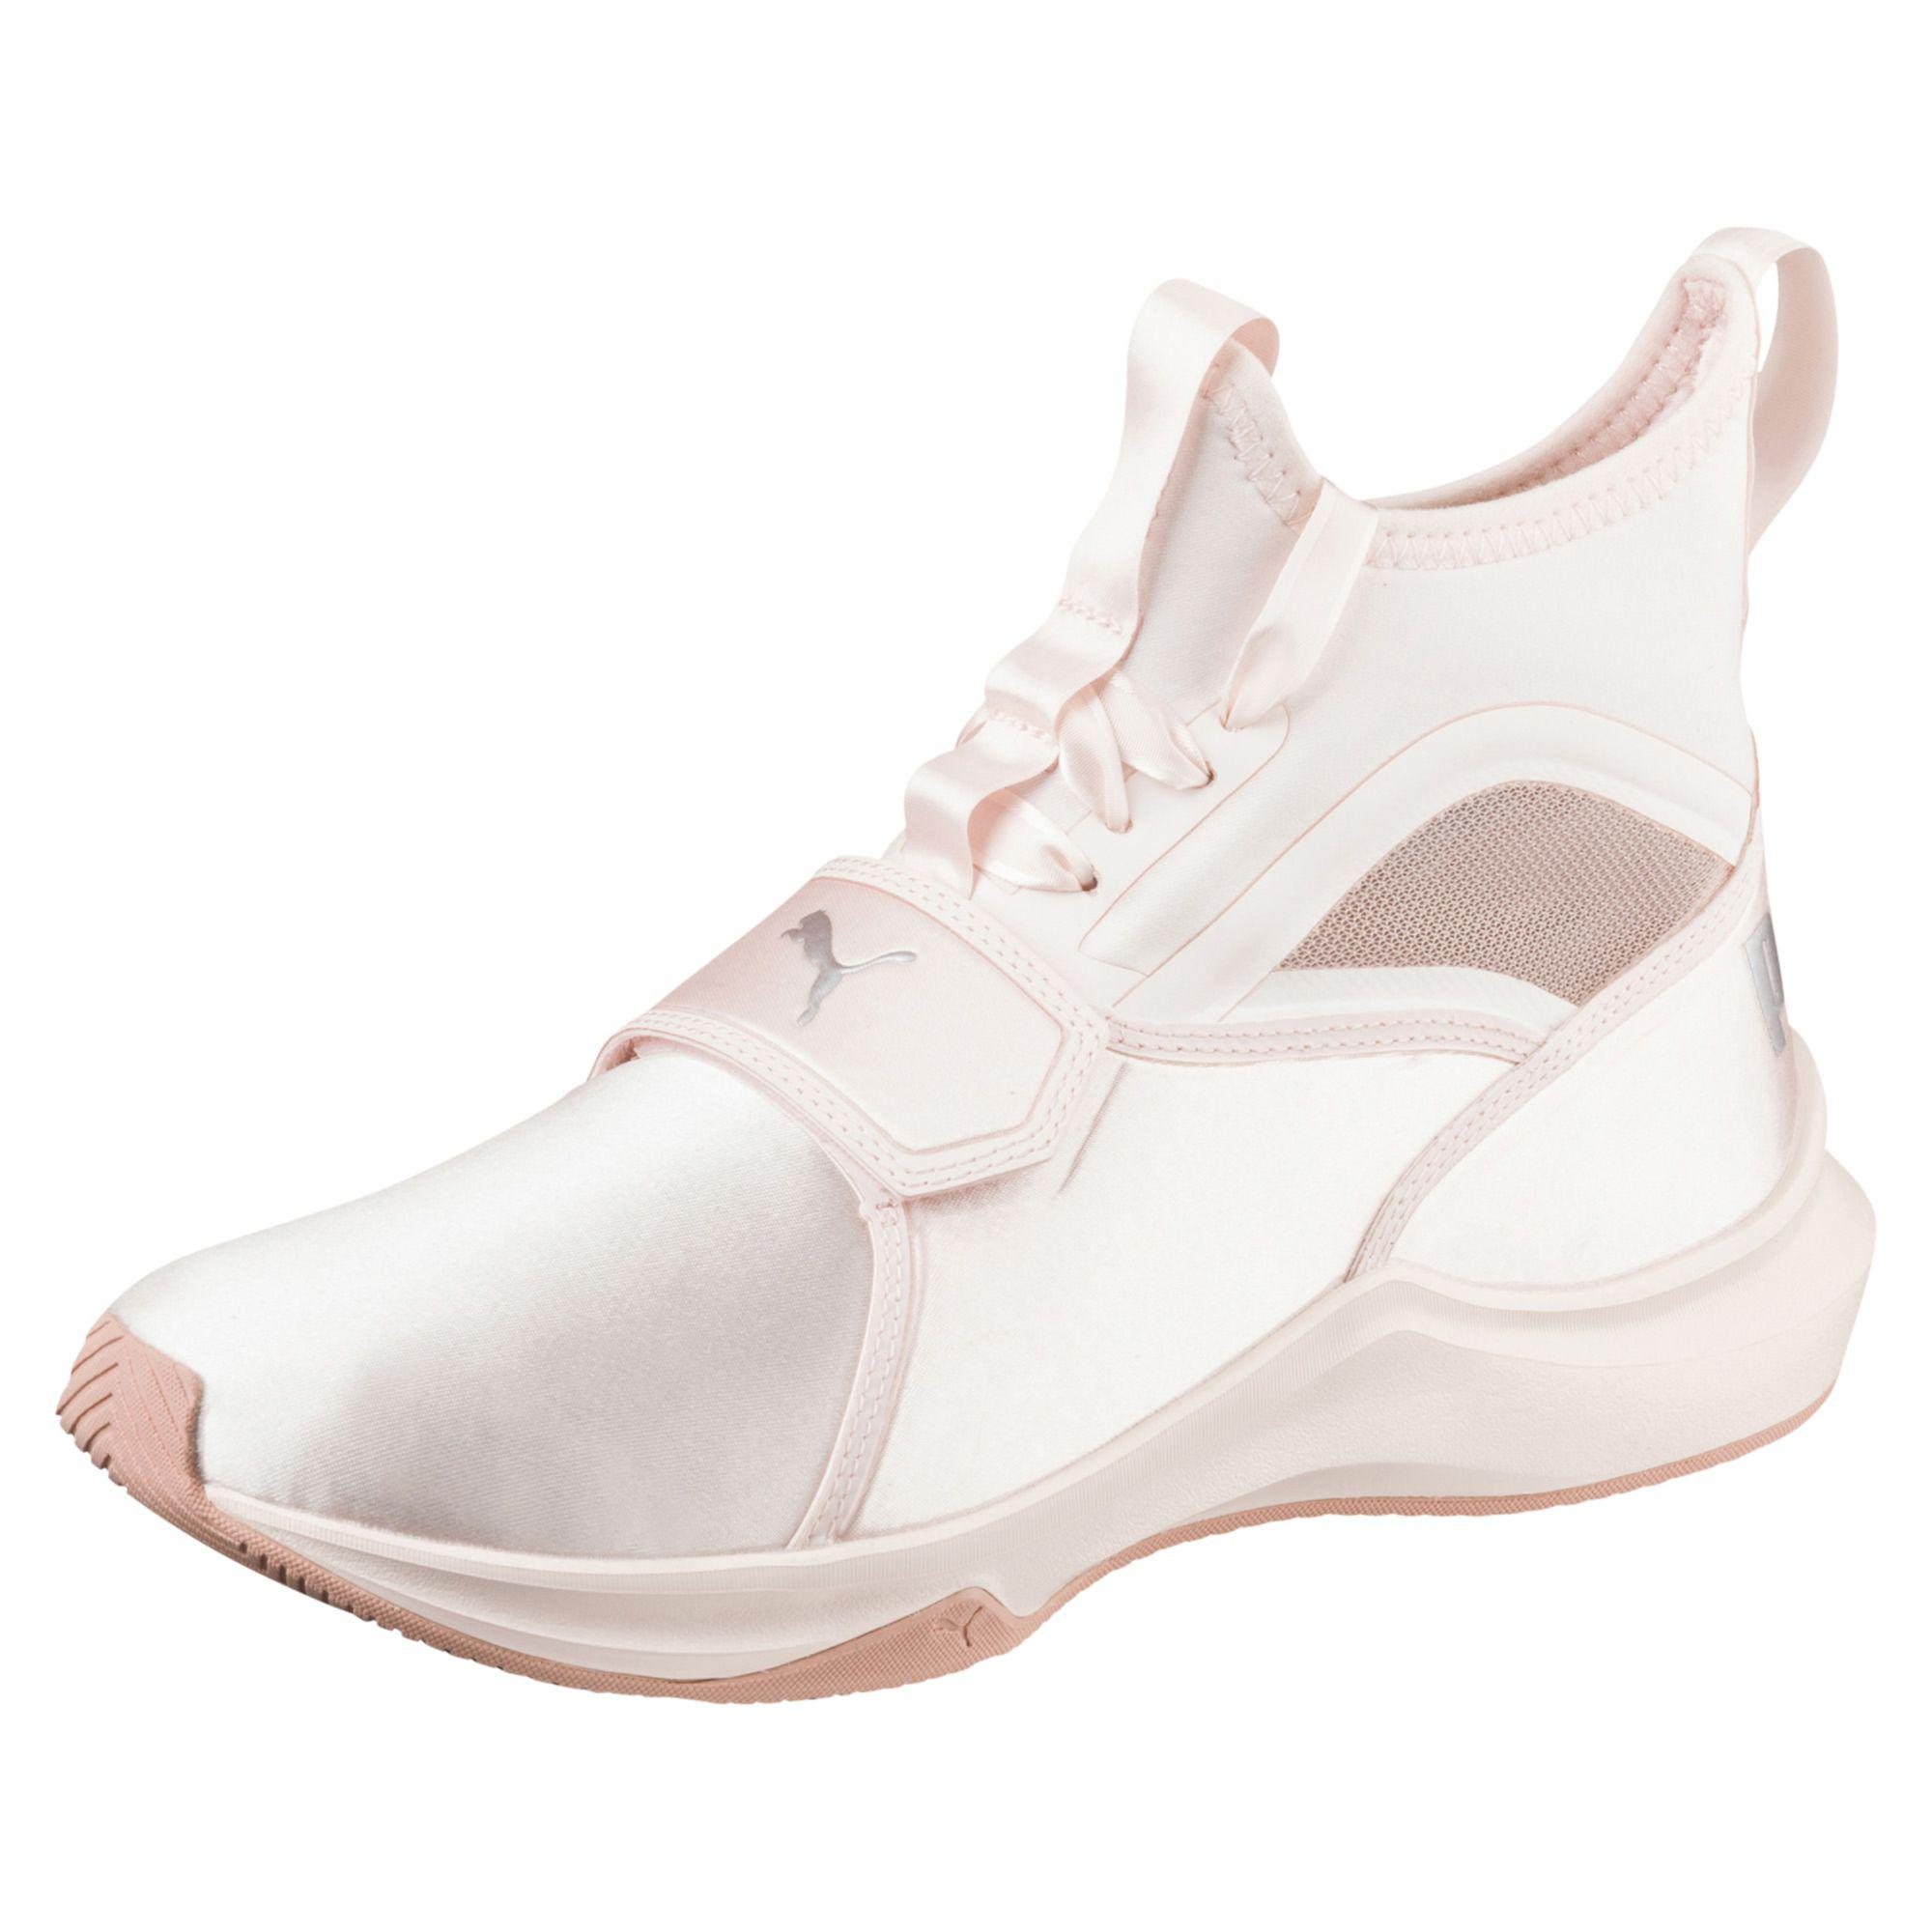 Lyst - PUMA Phenom Satin Ep Women s Training Shoes in White 7bc0970bf